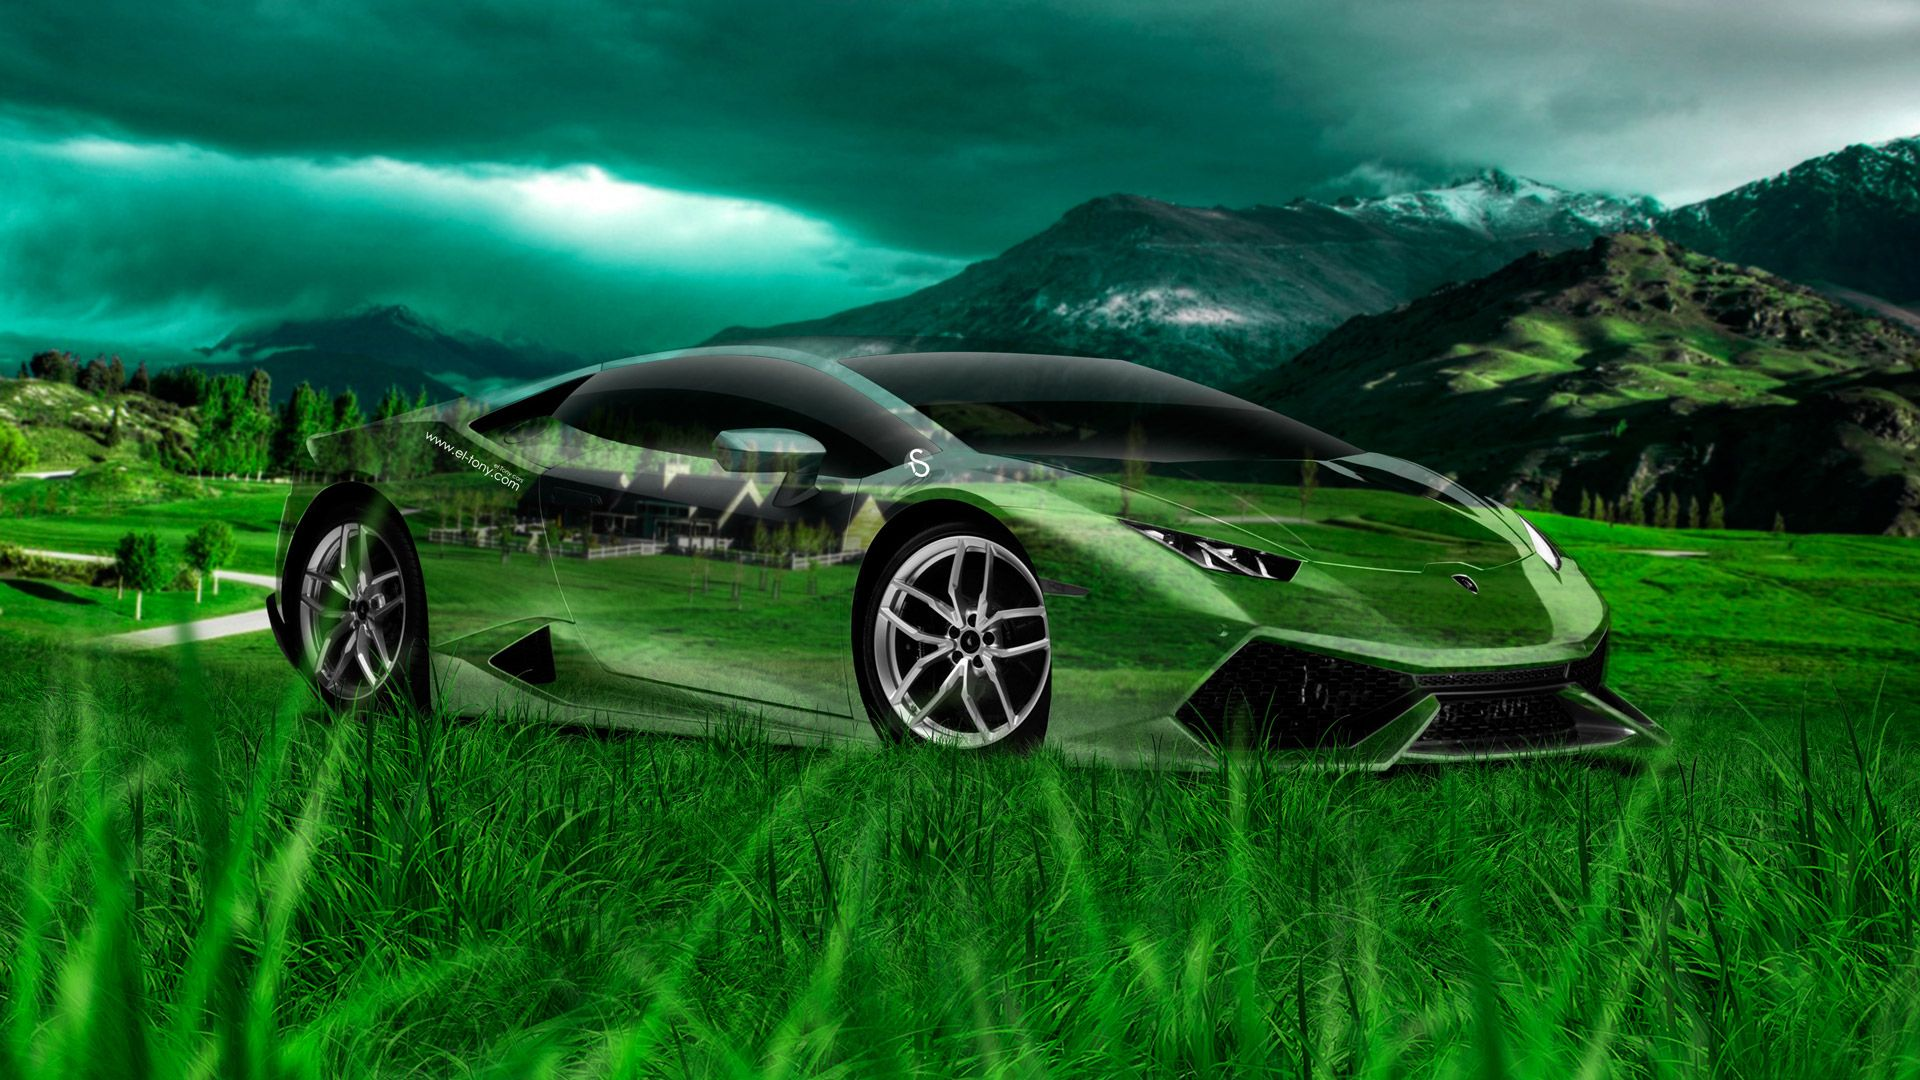 Nice Lamborghini Huracan Crystal Nature Car 2014 Art Photoshop